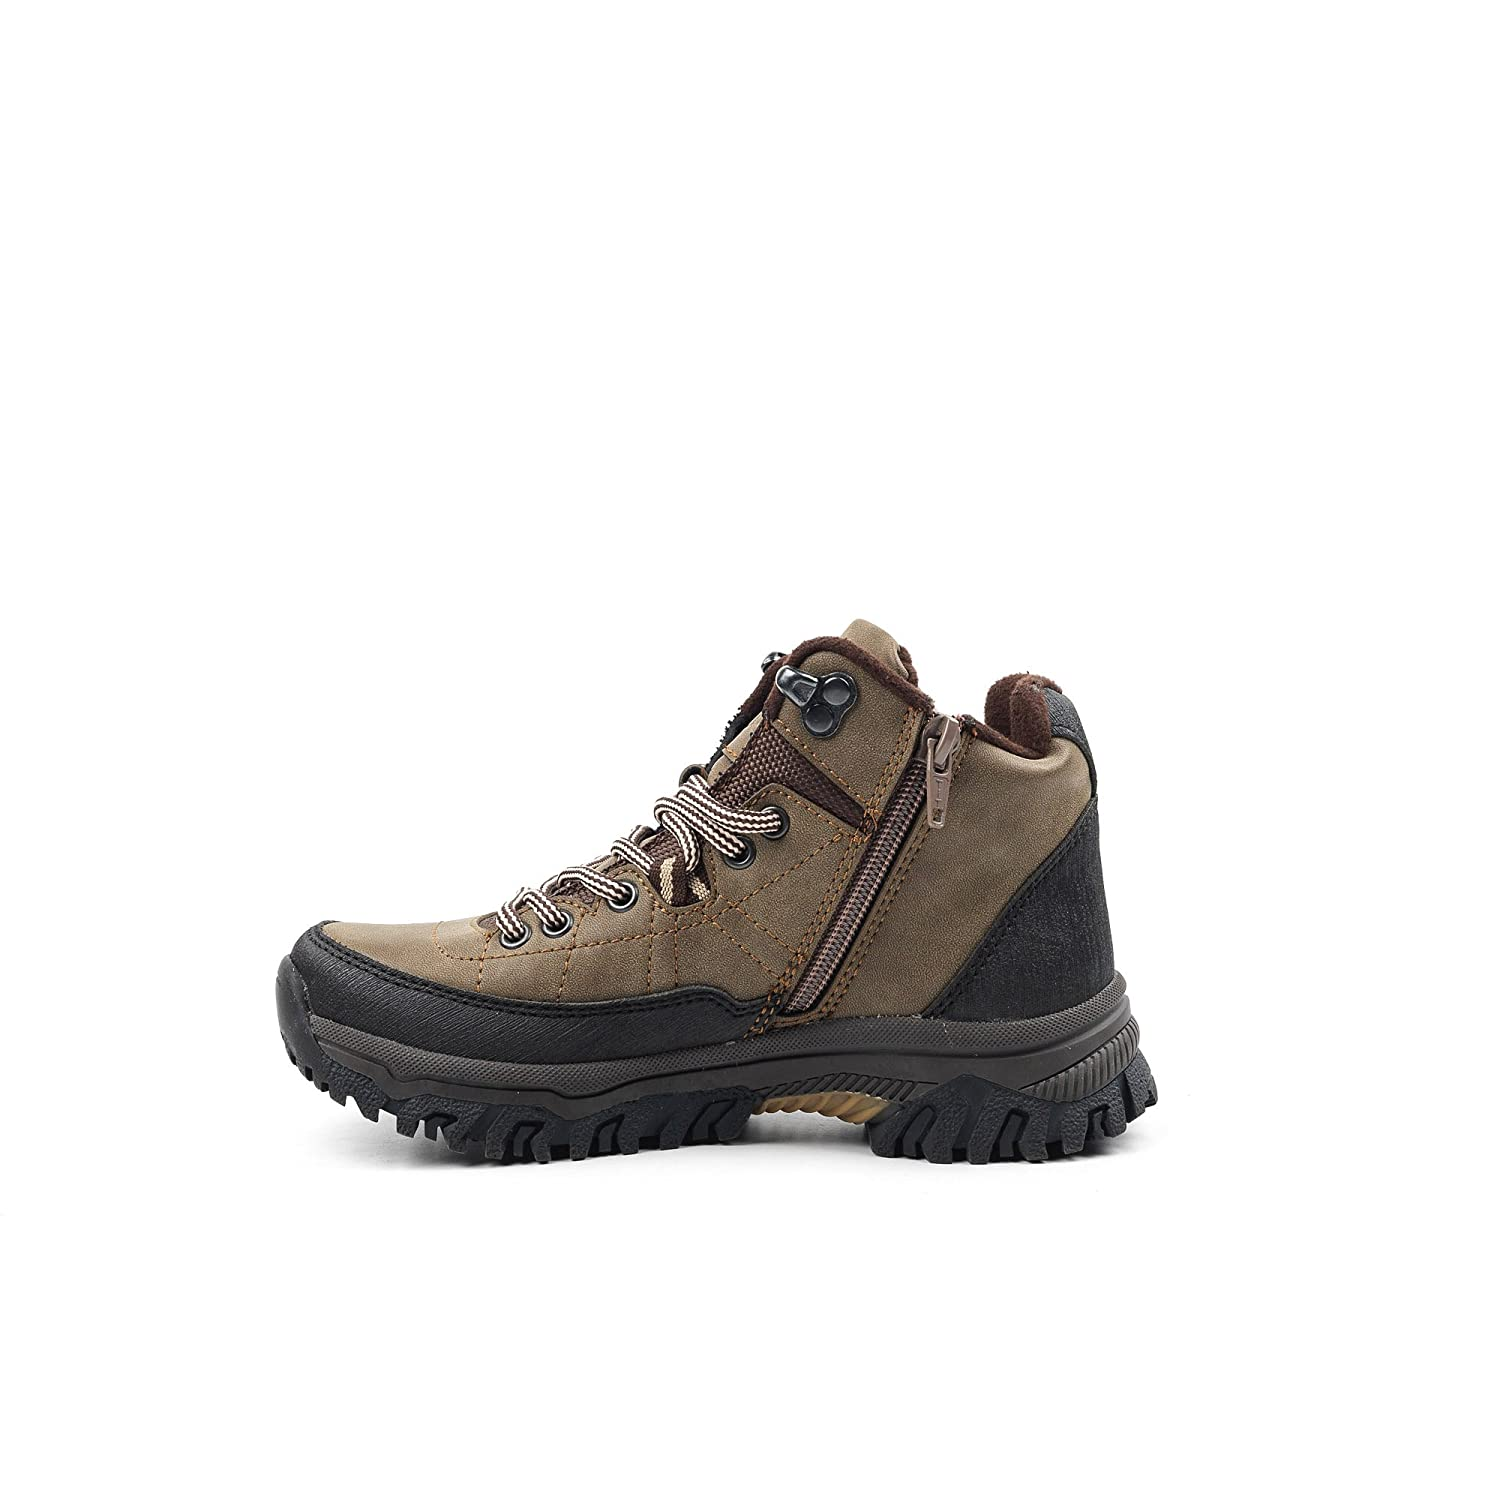 Letoon Boys Winter Boot Premium Outdoor Leisure Shoe Winter Boots Mountain Hiking Comfortable Breathable